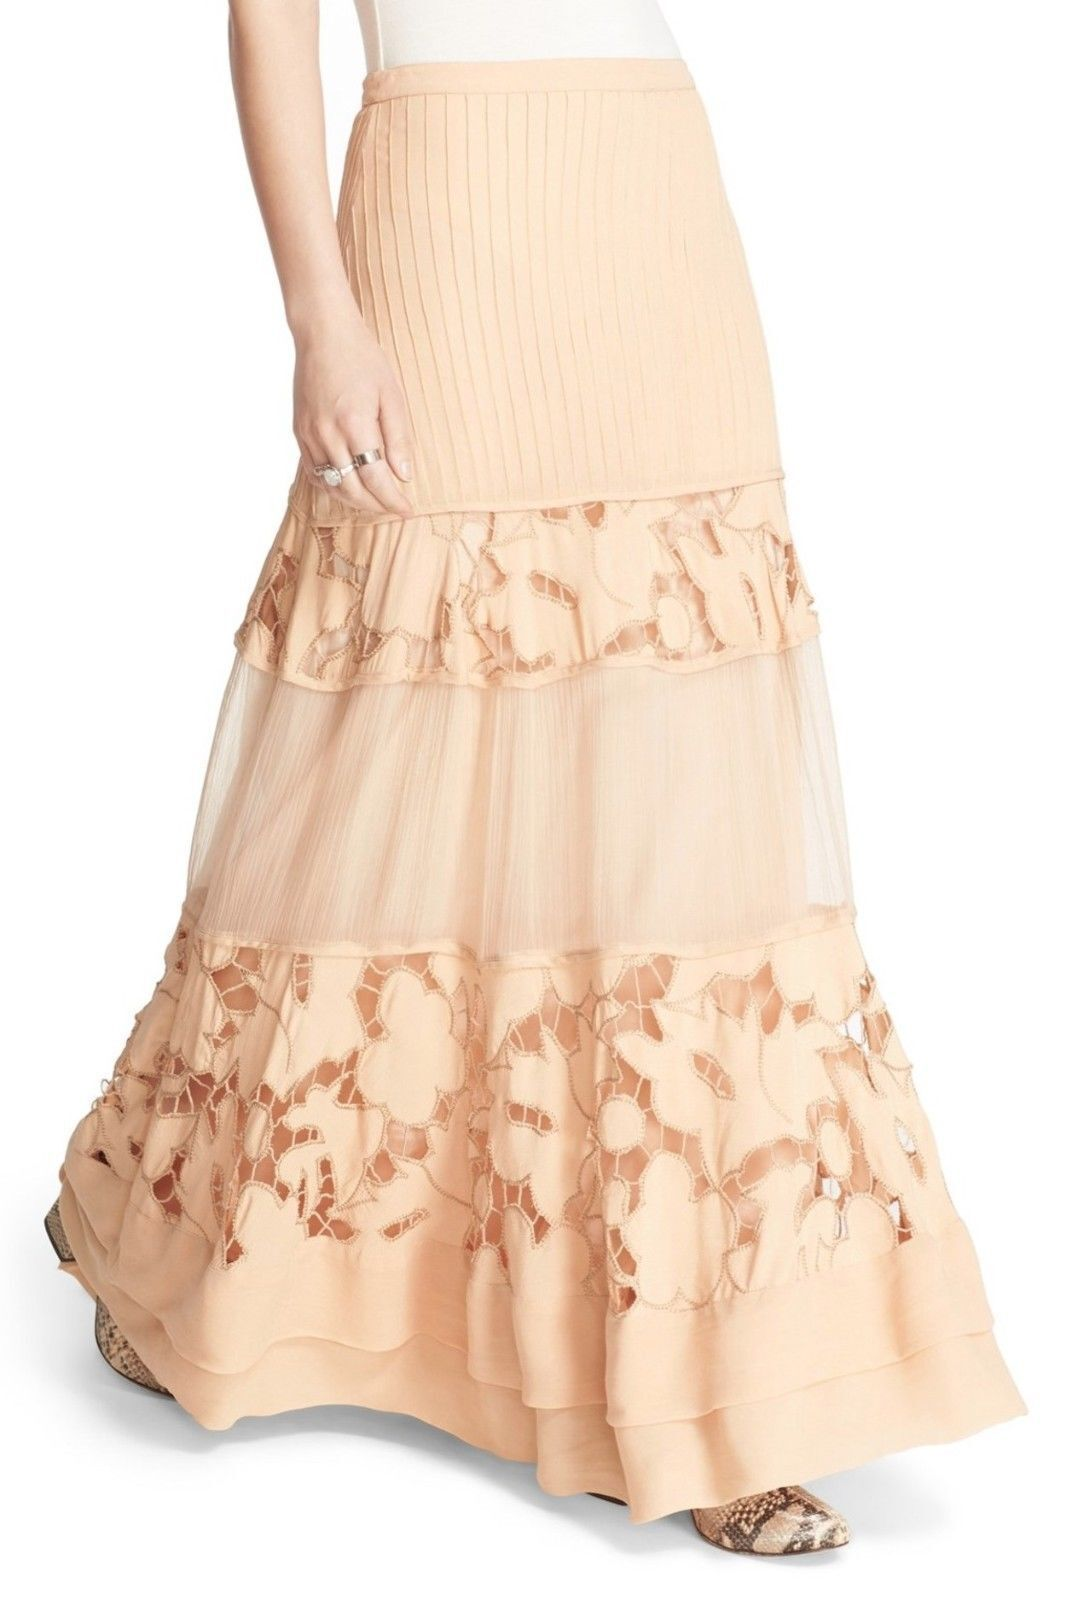 New Free People To Put It Wildly Lace Inset Maxi  Flowy Skirt Peach  248, 6